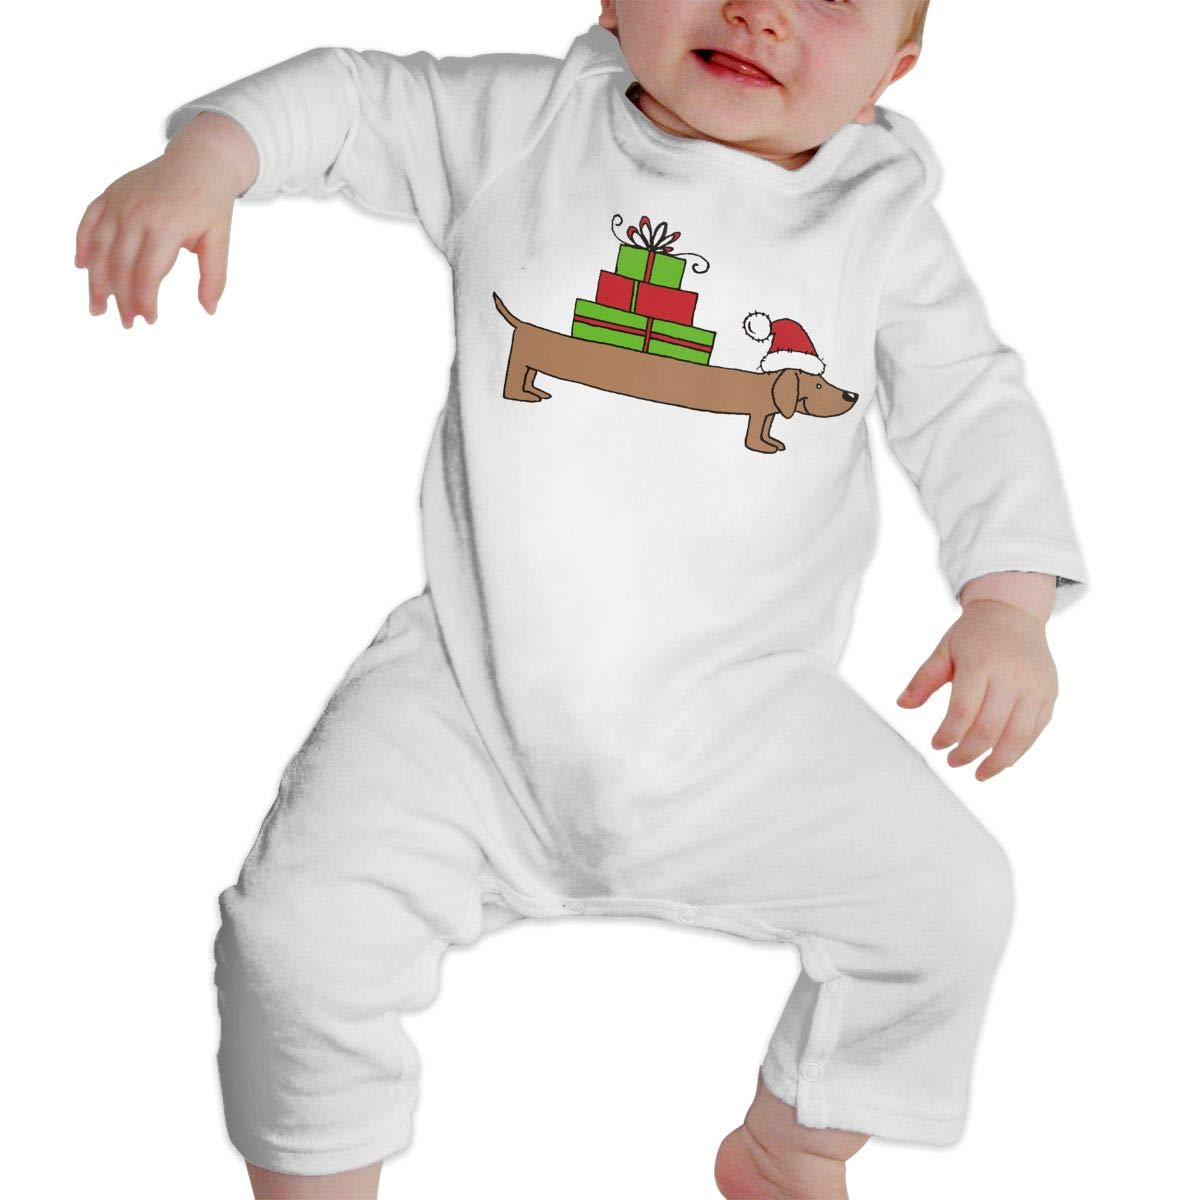 A1BY-5US Newborn Baby Boys Girls Cotton Long Sleeve Christmas Dachshund Clipart Jumpsuit Romper One-Piece Romper Clothes